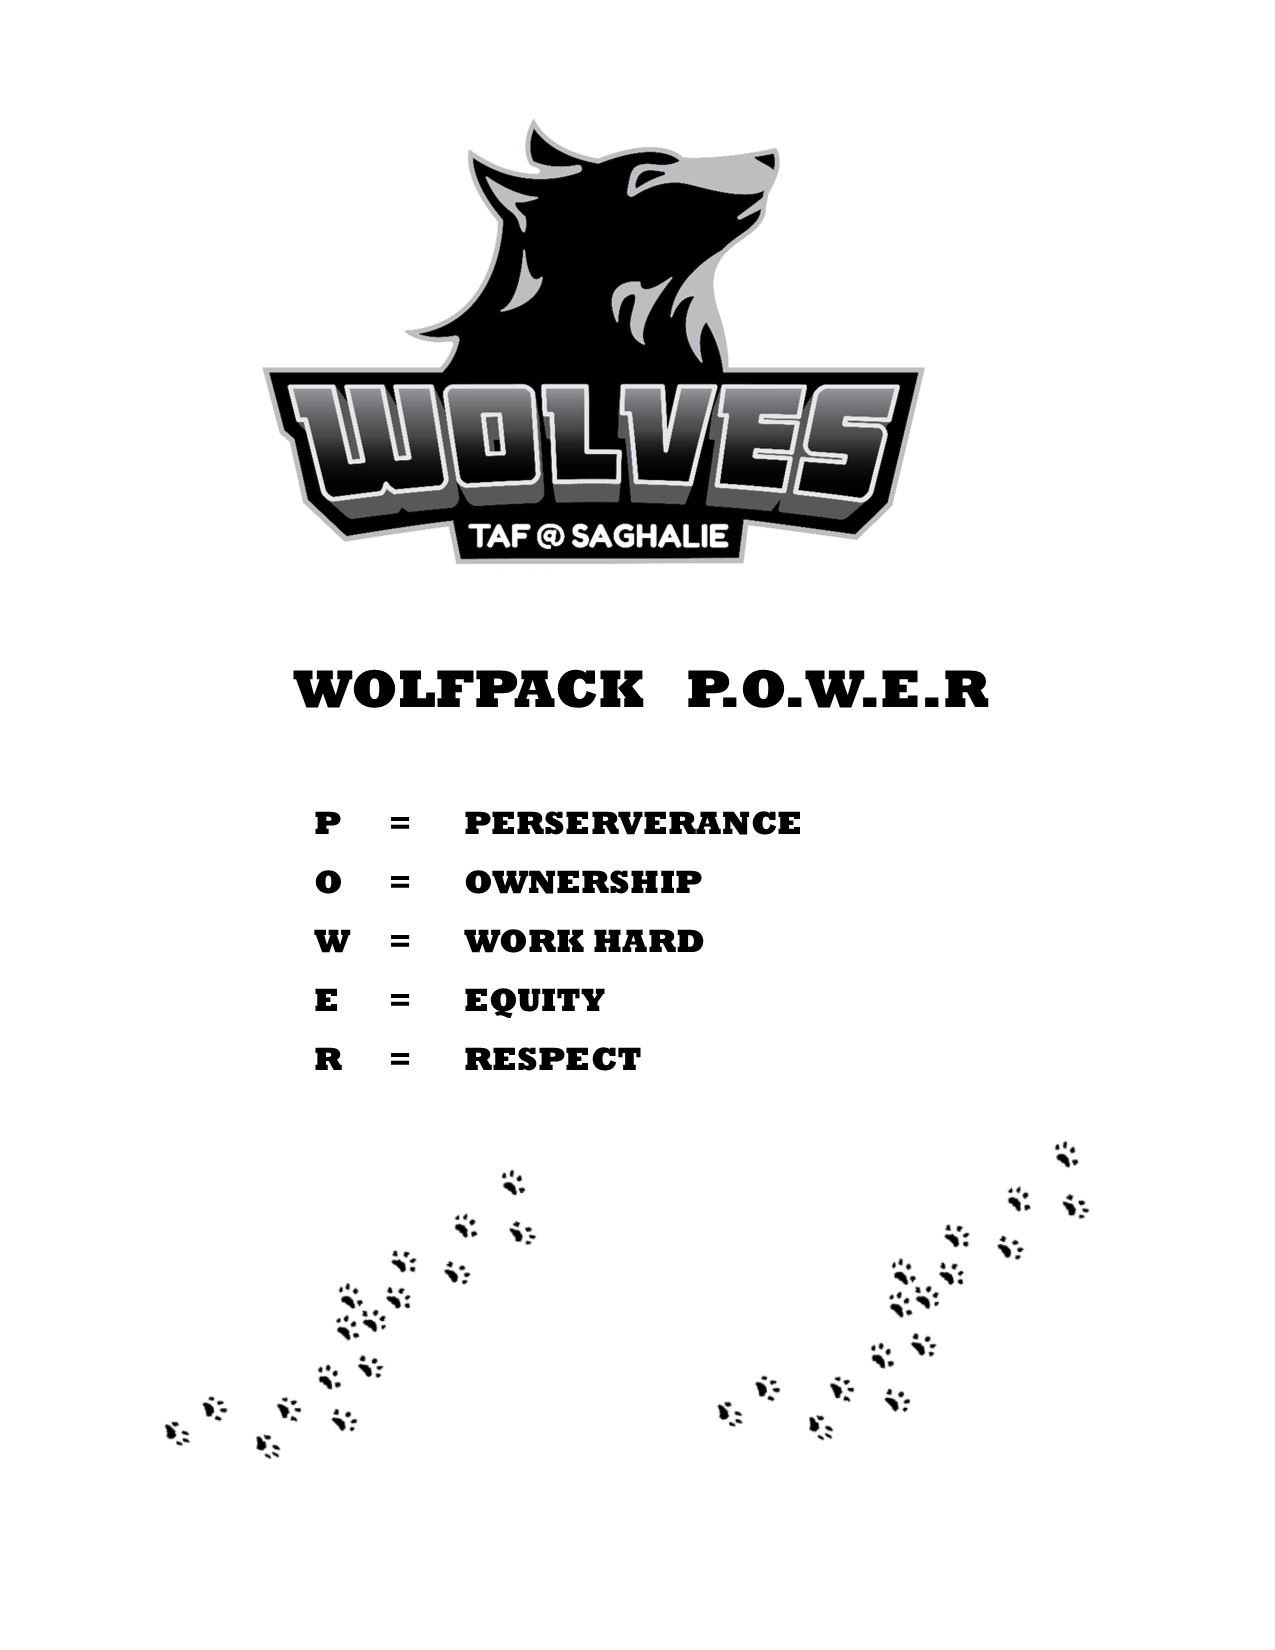 Wolfpack Power